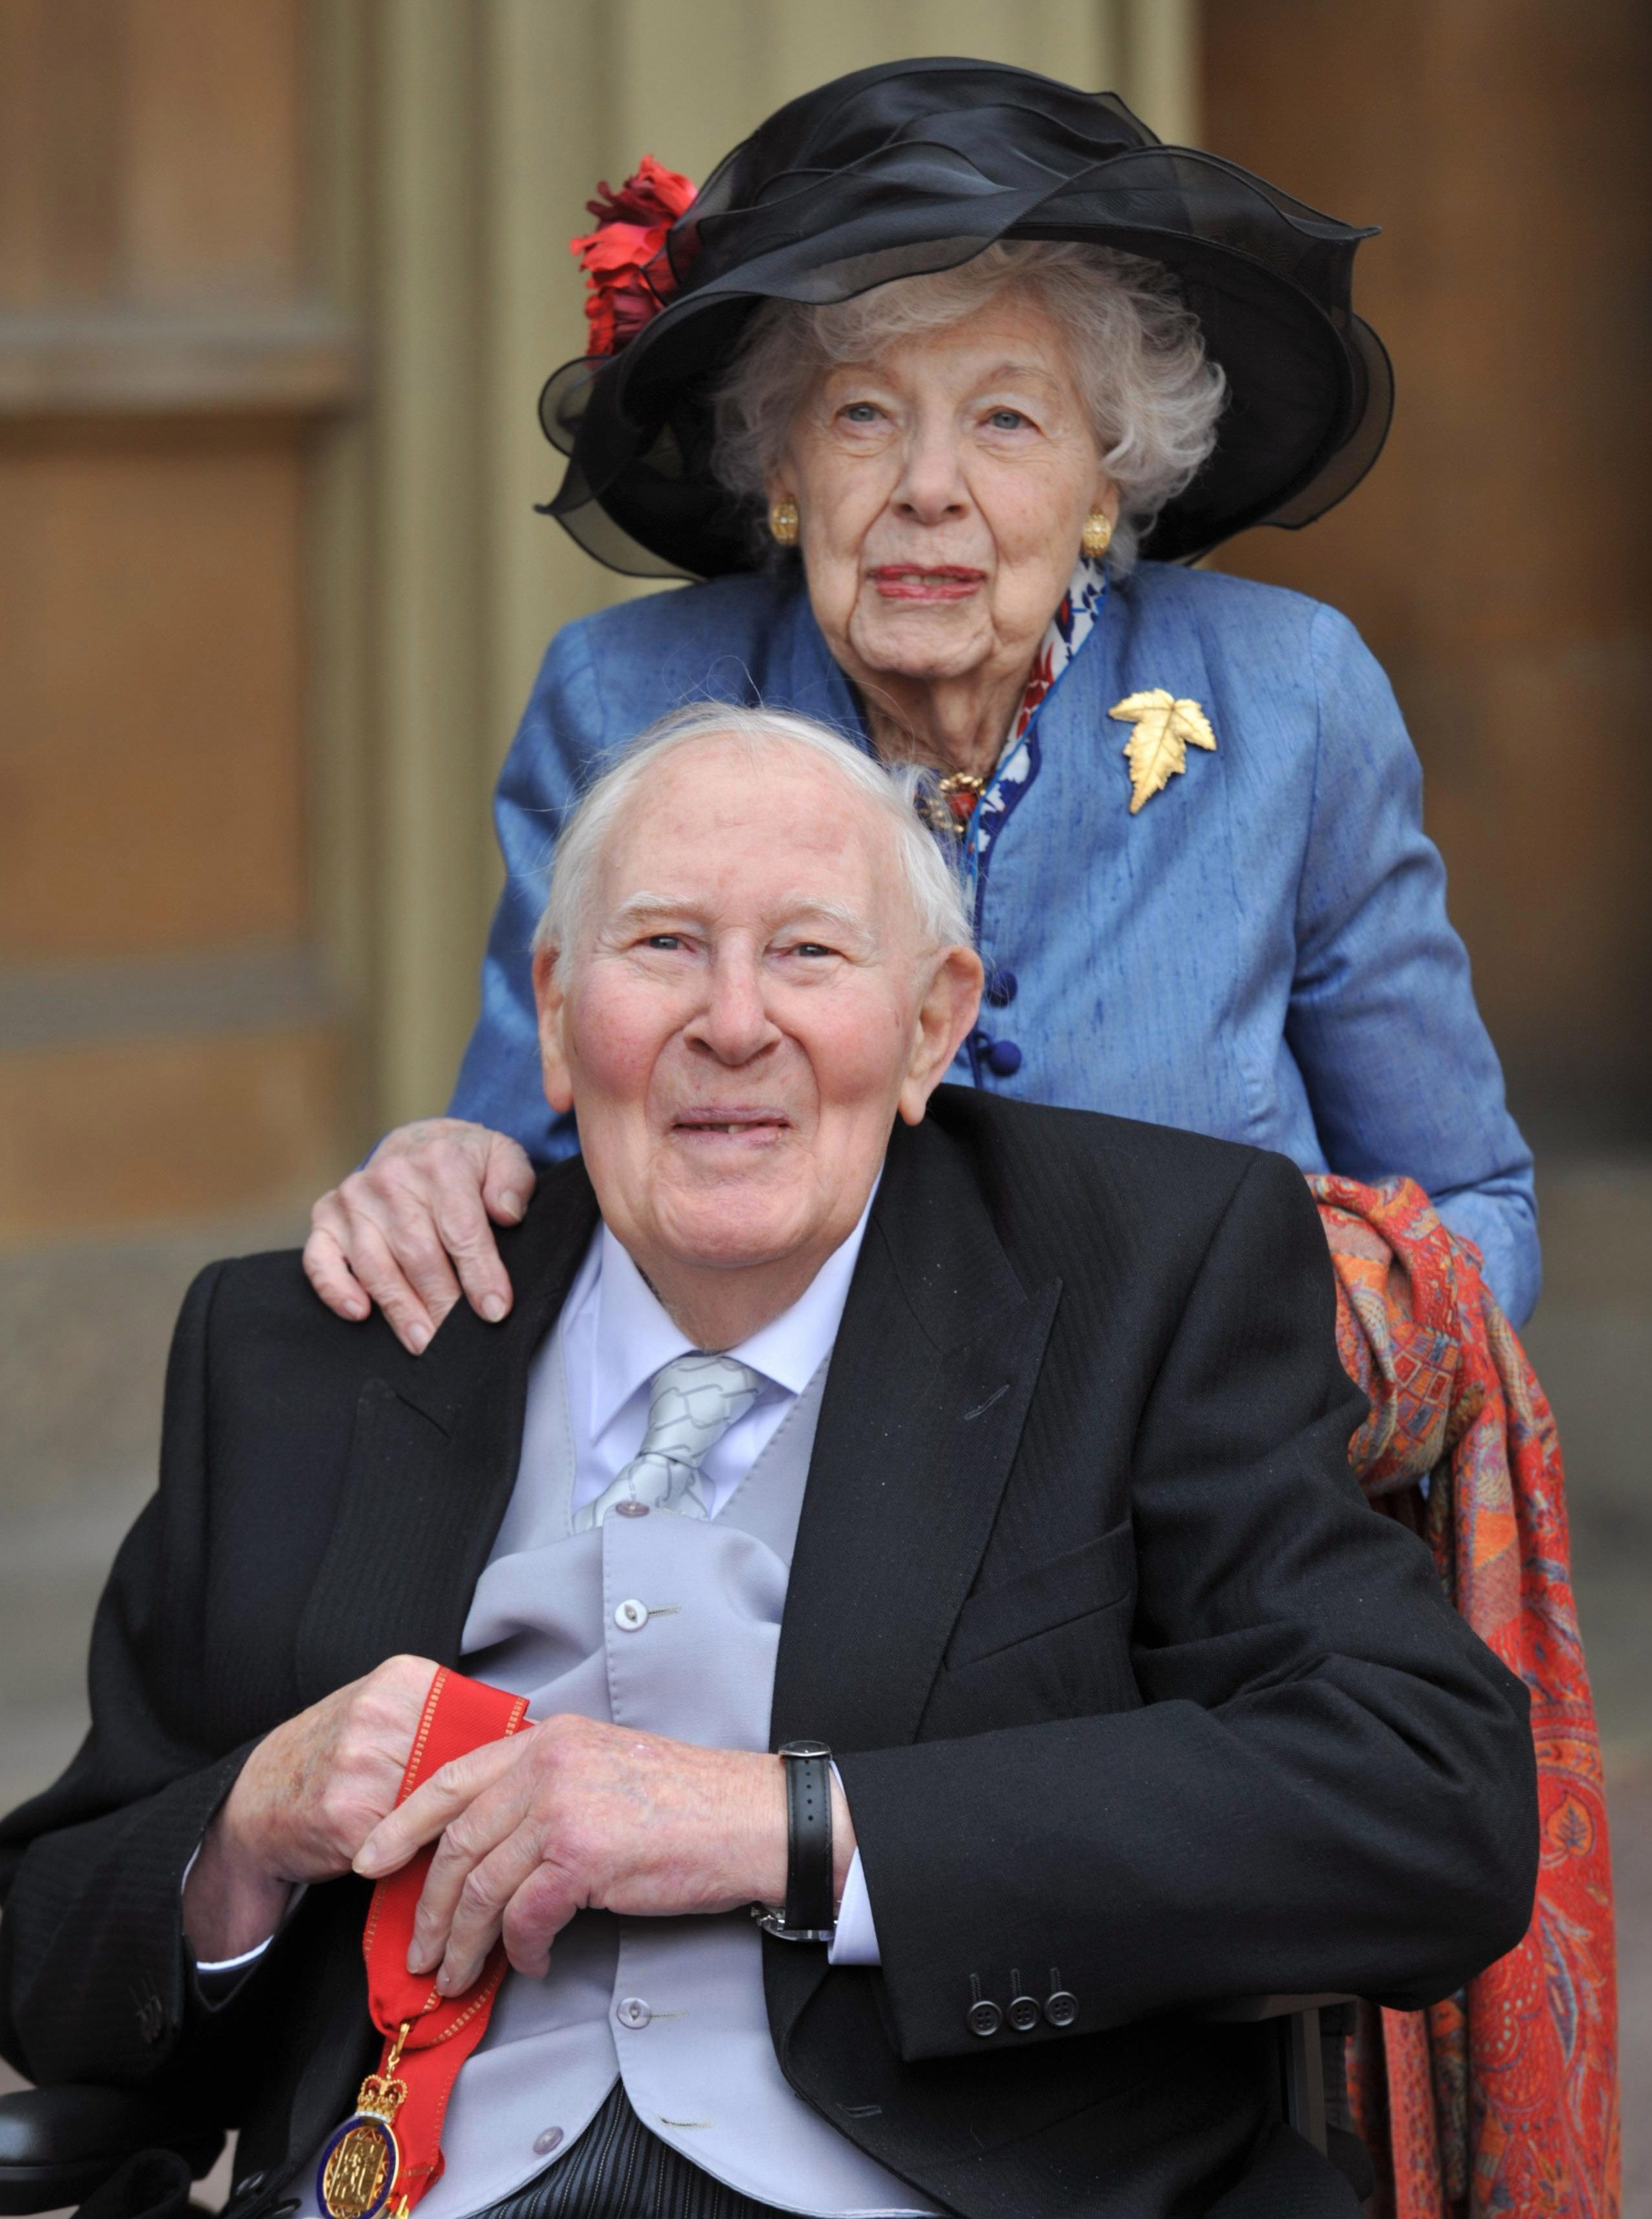 Sir Roger with wife Moyra last year at Buckingham Palace where he was awarded a Companion of Honour from the Duke of Cambridge